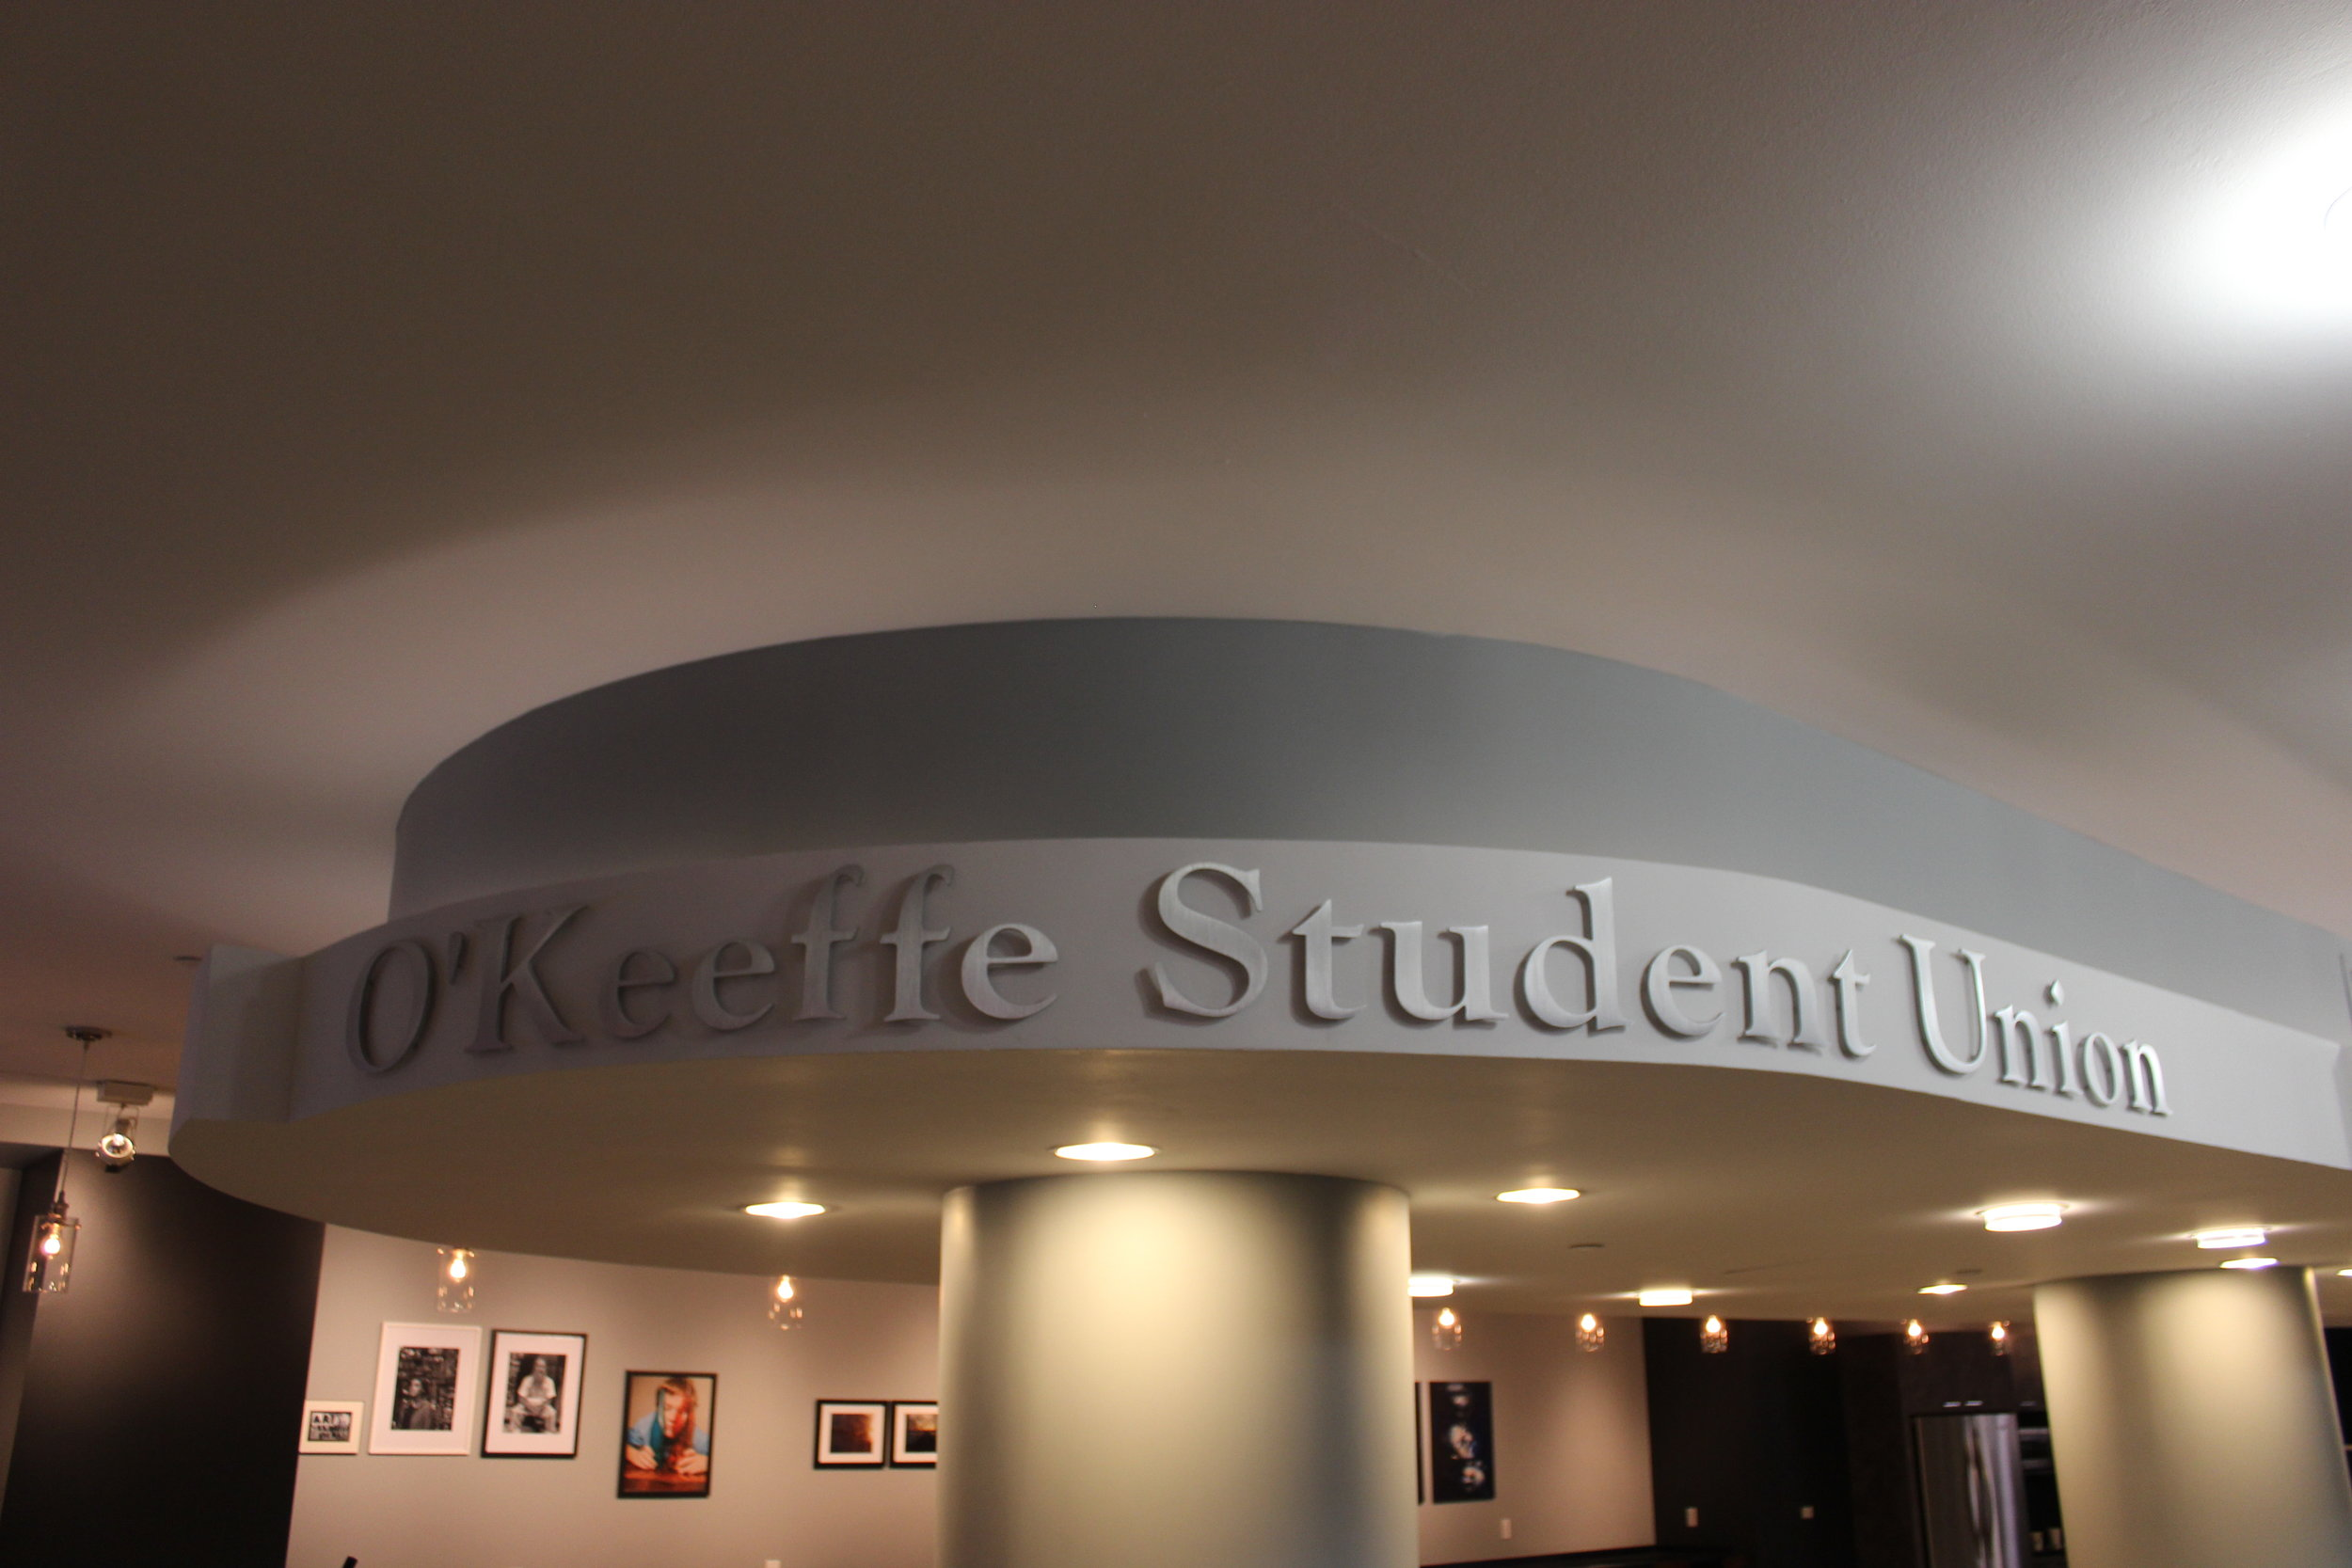 Signage at the entrance to the O'Keeffe Student Union (Photo by Michael Sheetz)